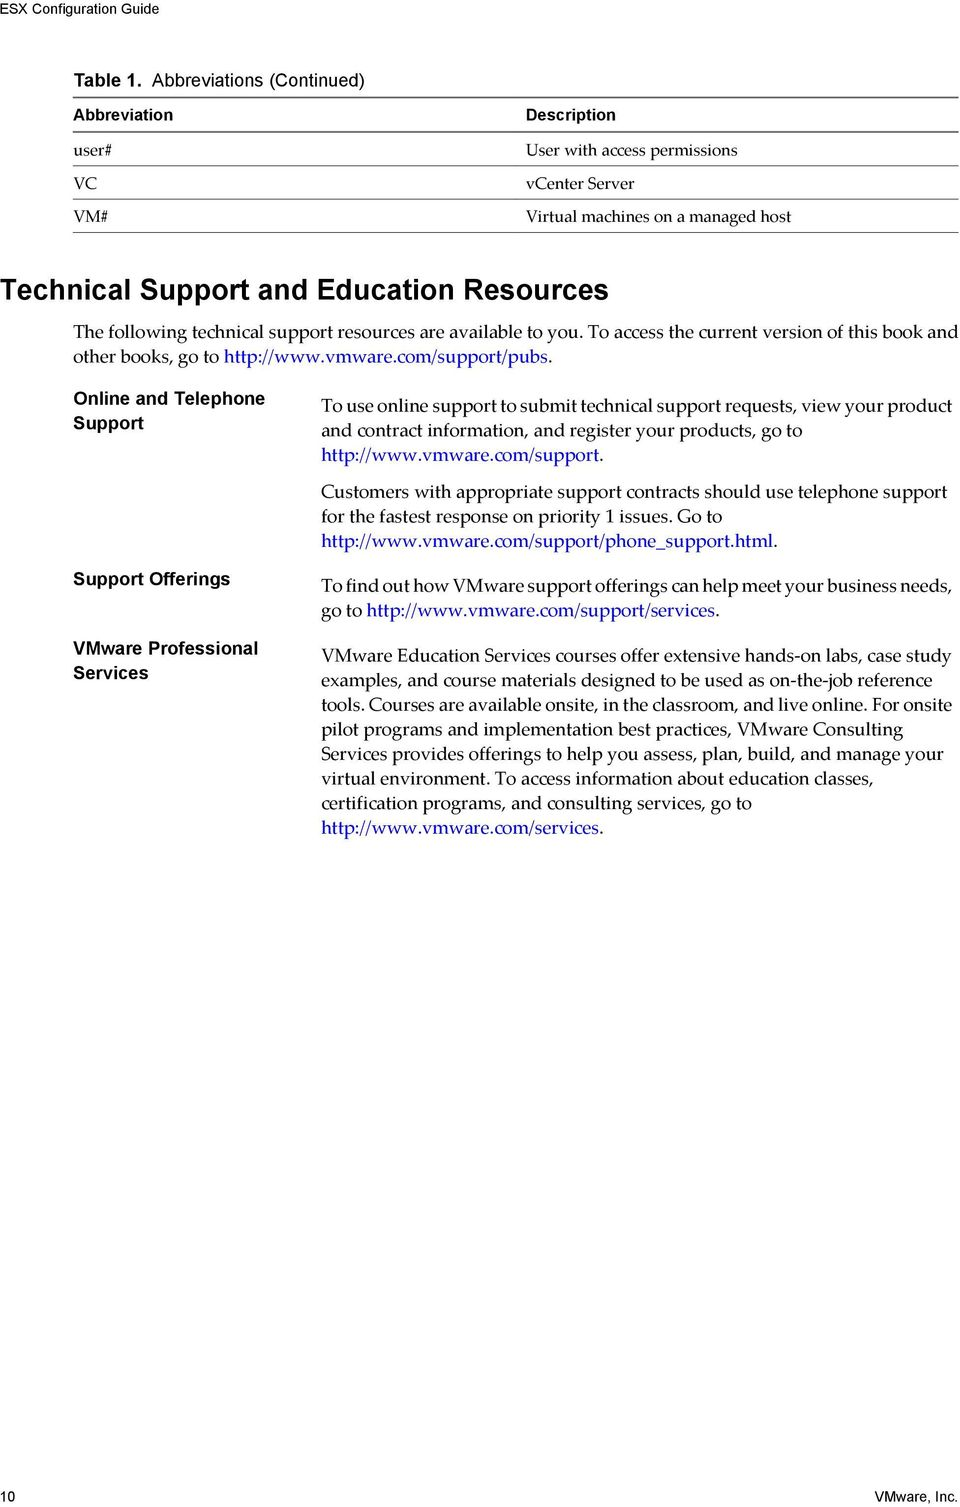 technical support resources are available to you. To access the current version of this book and other books, go to http://www.vmware.com/support/pubs.